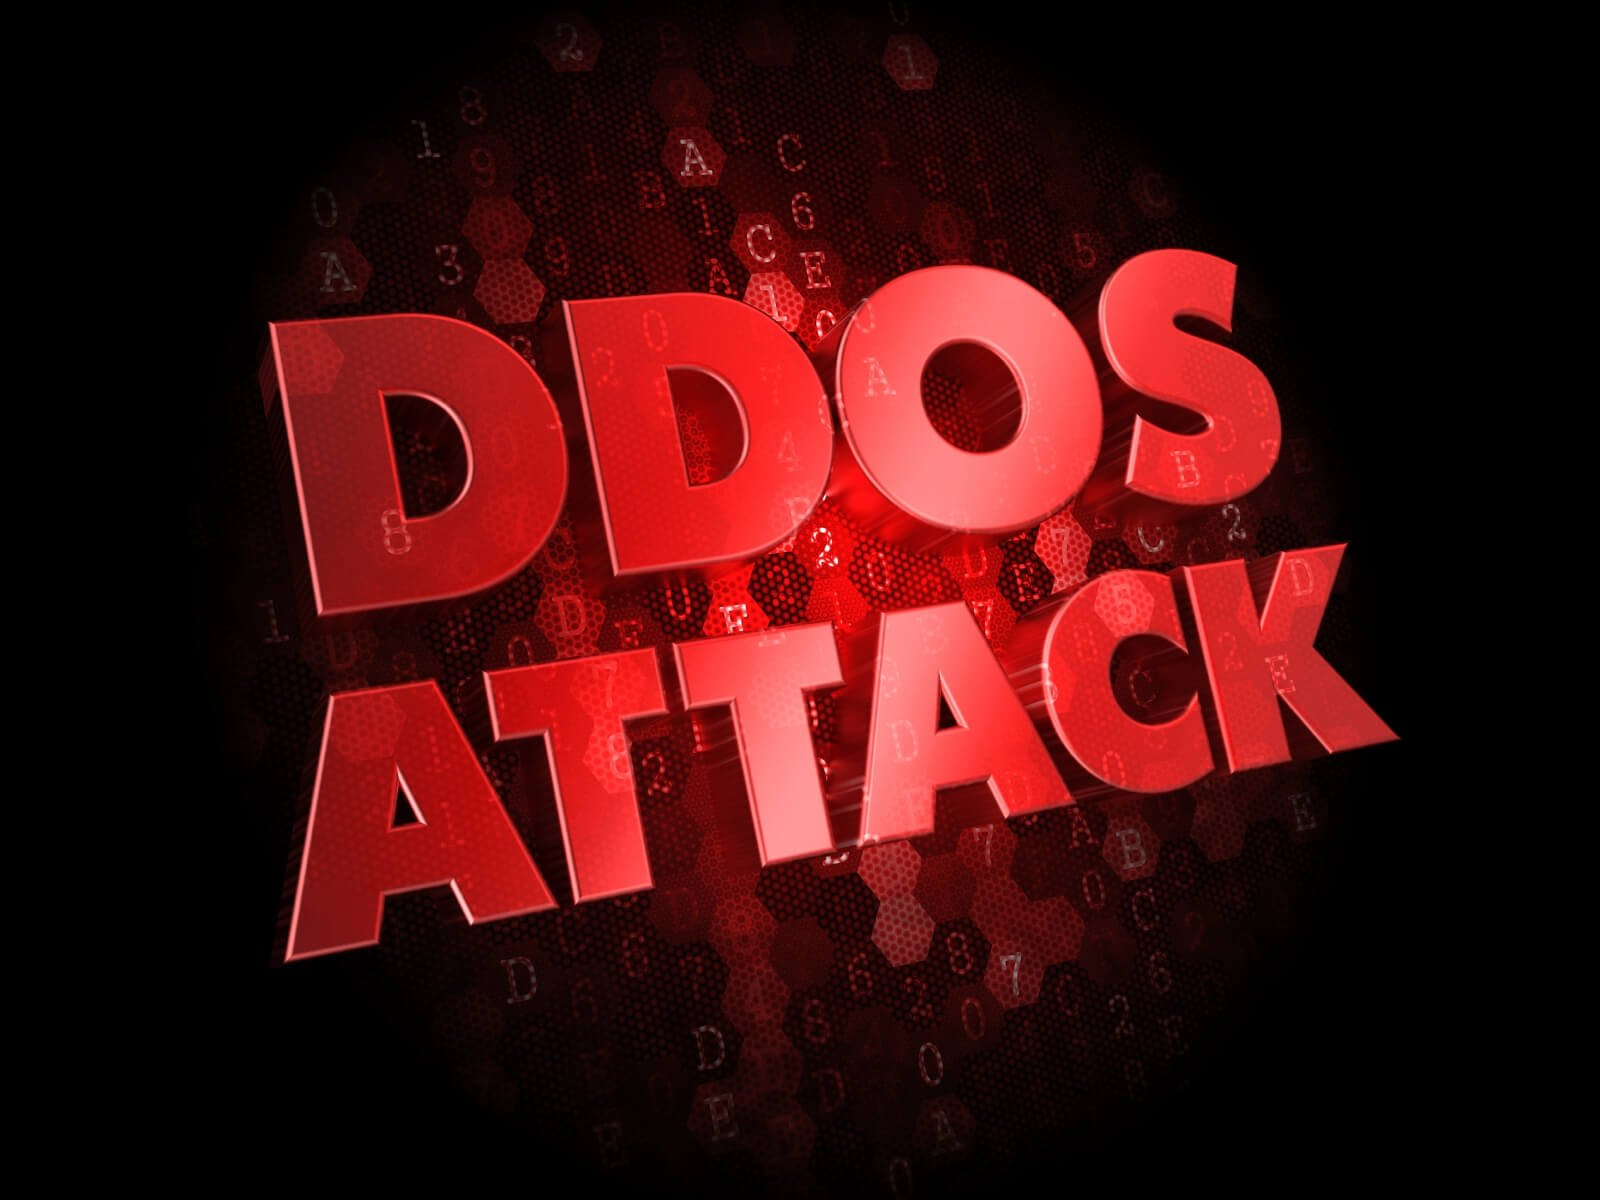 With DDoS Attacks on the Rise, Are You Protected?